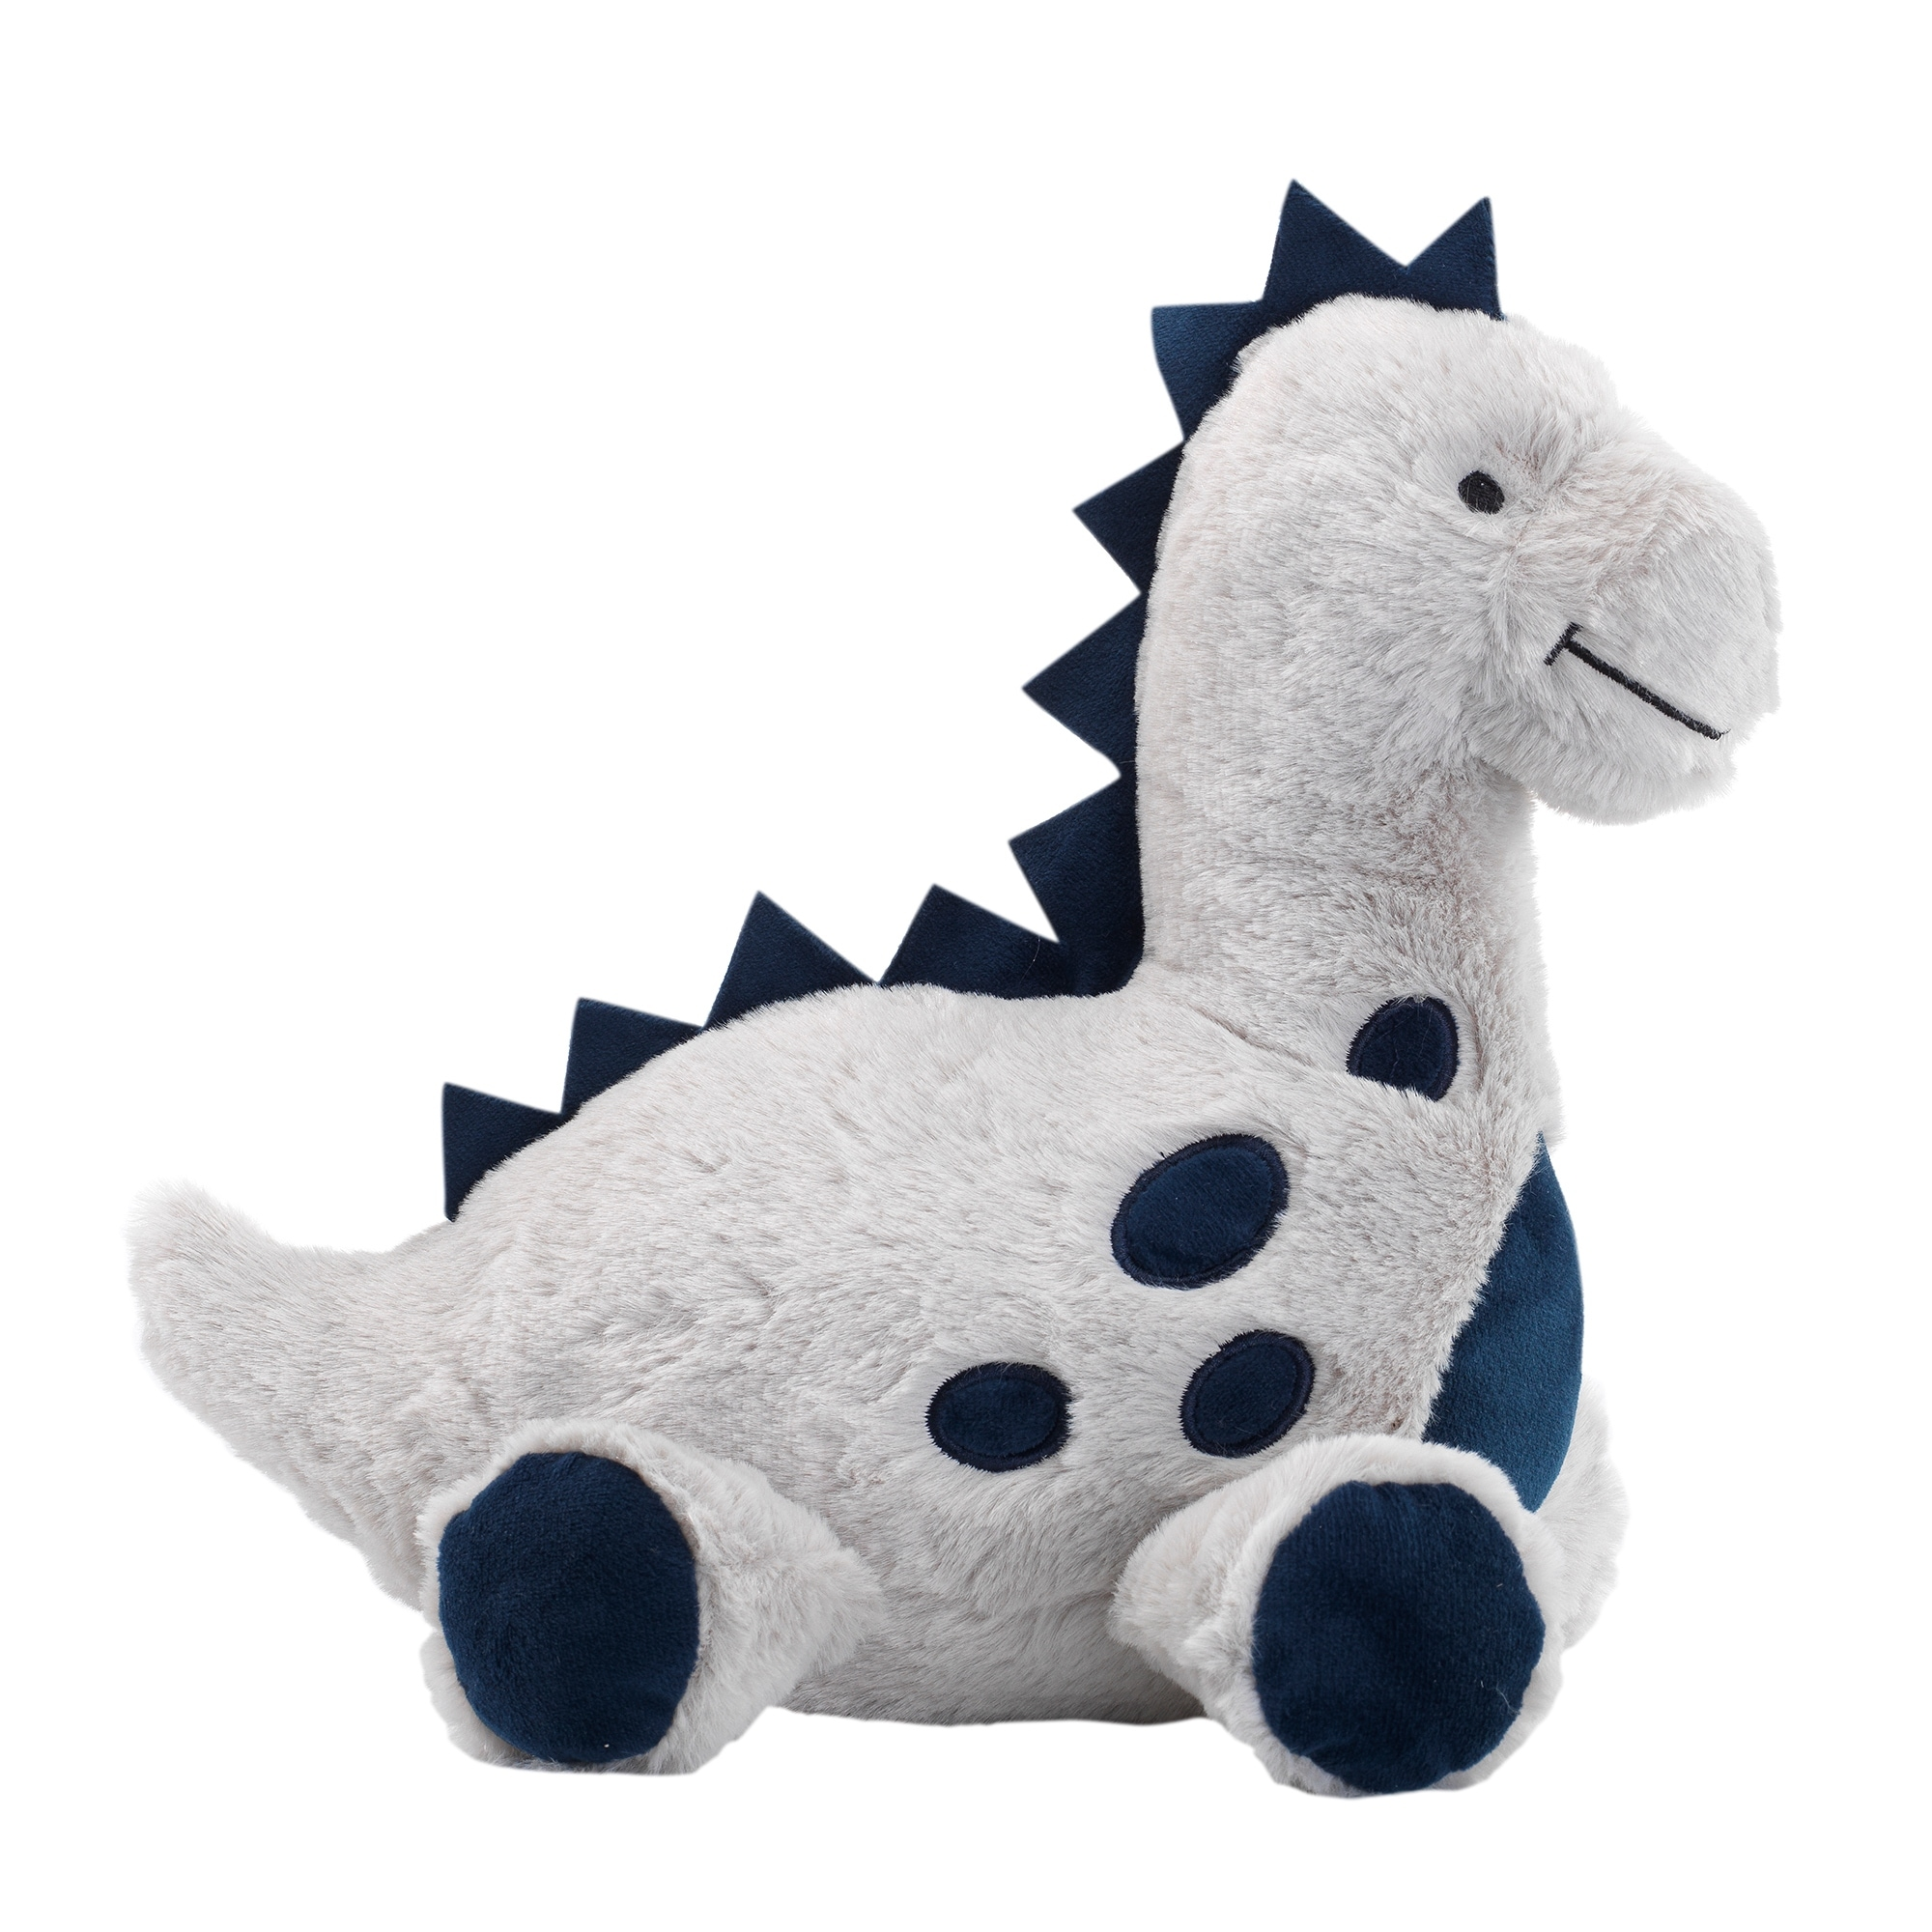 Shop Lambs Ivy Baby Dino Blue Gray Plush Dinosaur Stuffed Animal